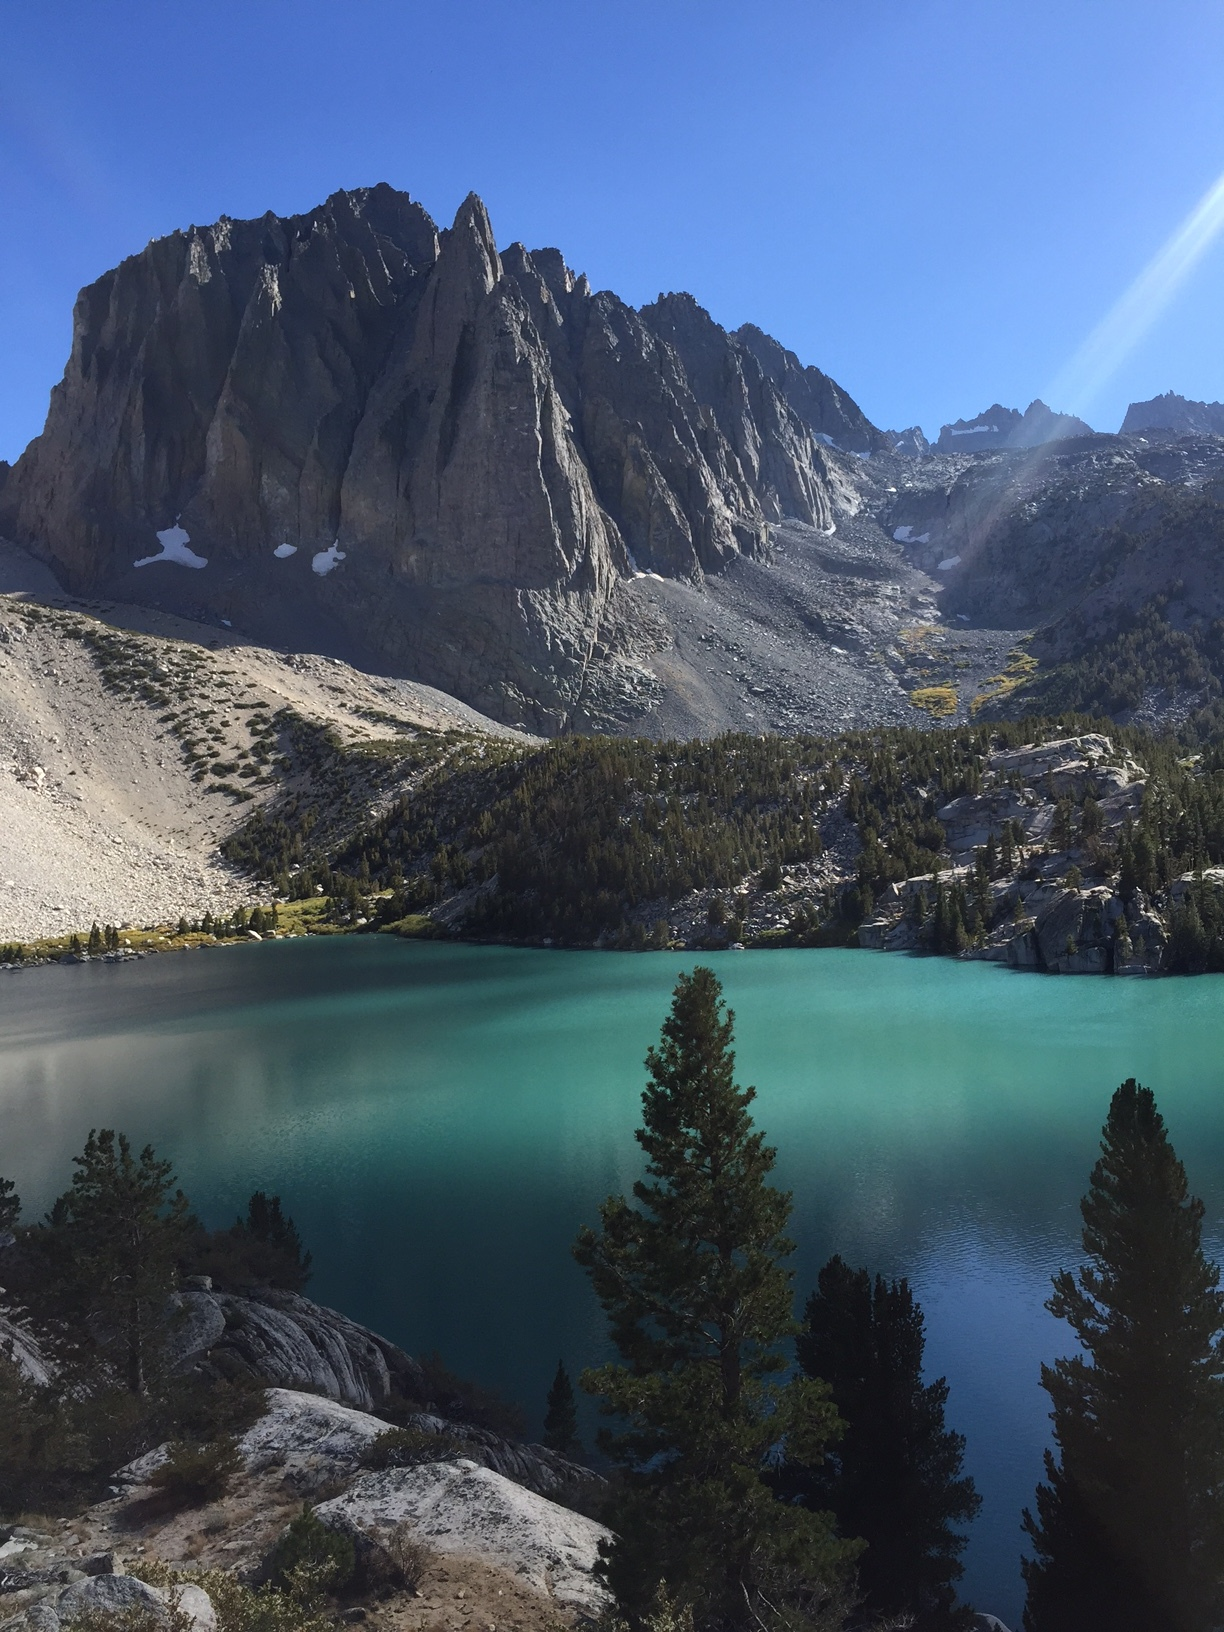 Temple Crag (12,976') towering over the milky-turquoise waters of Second Lake (10,159')